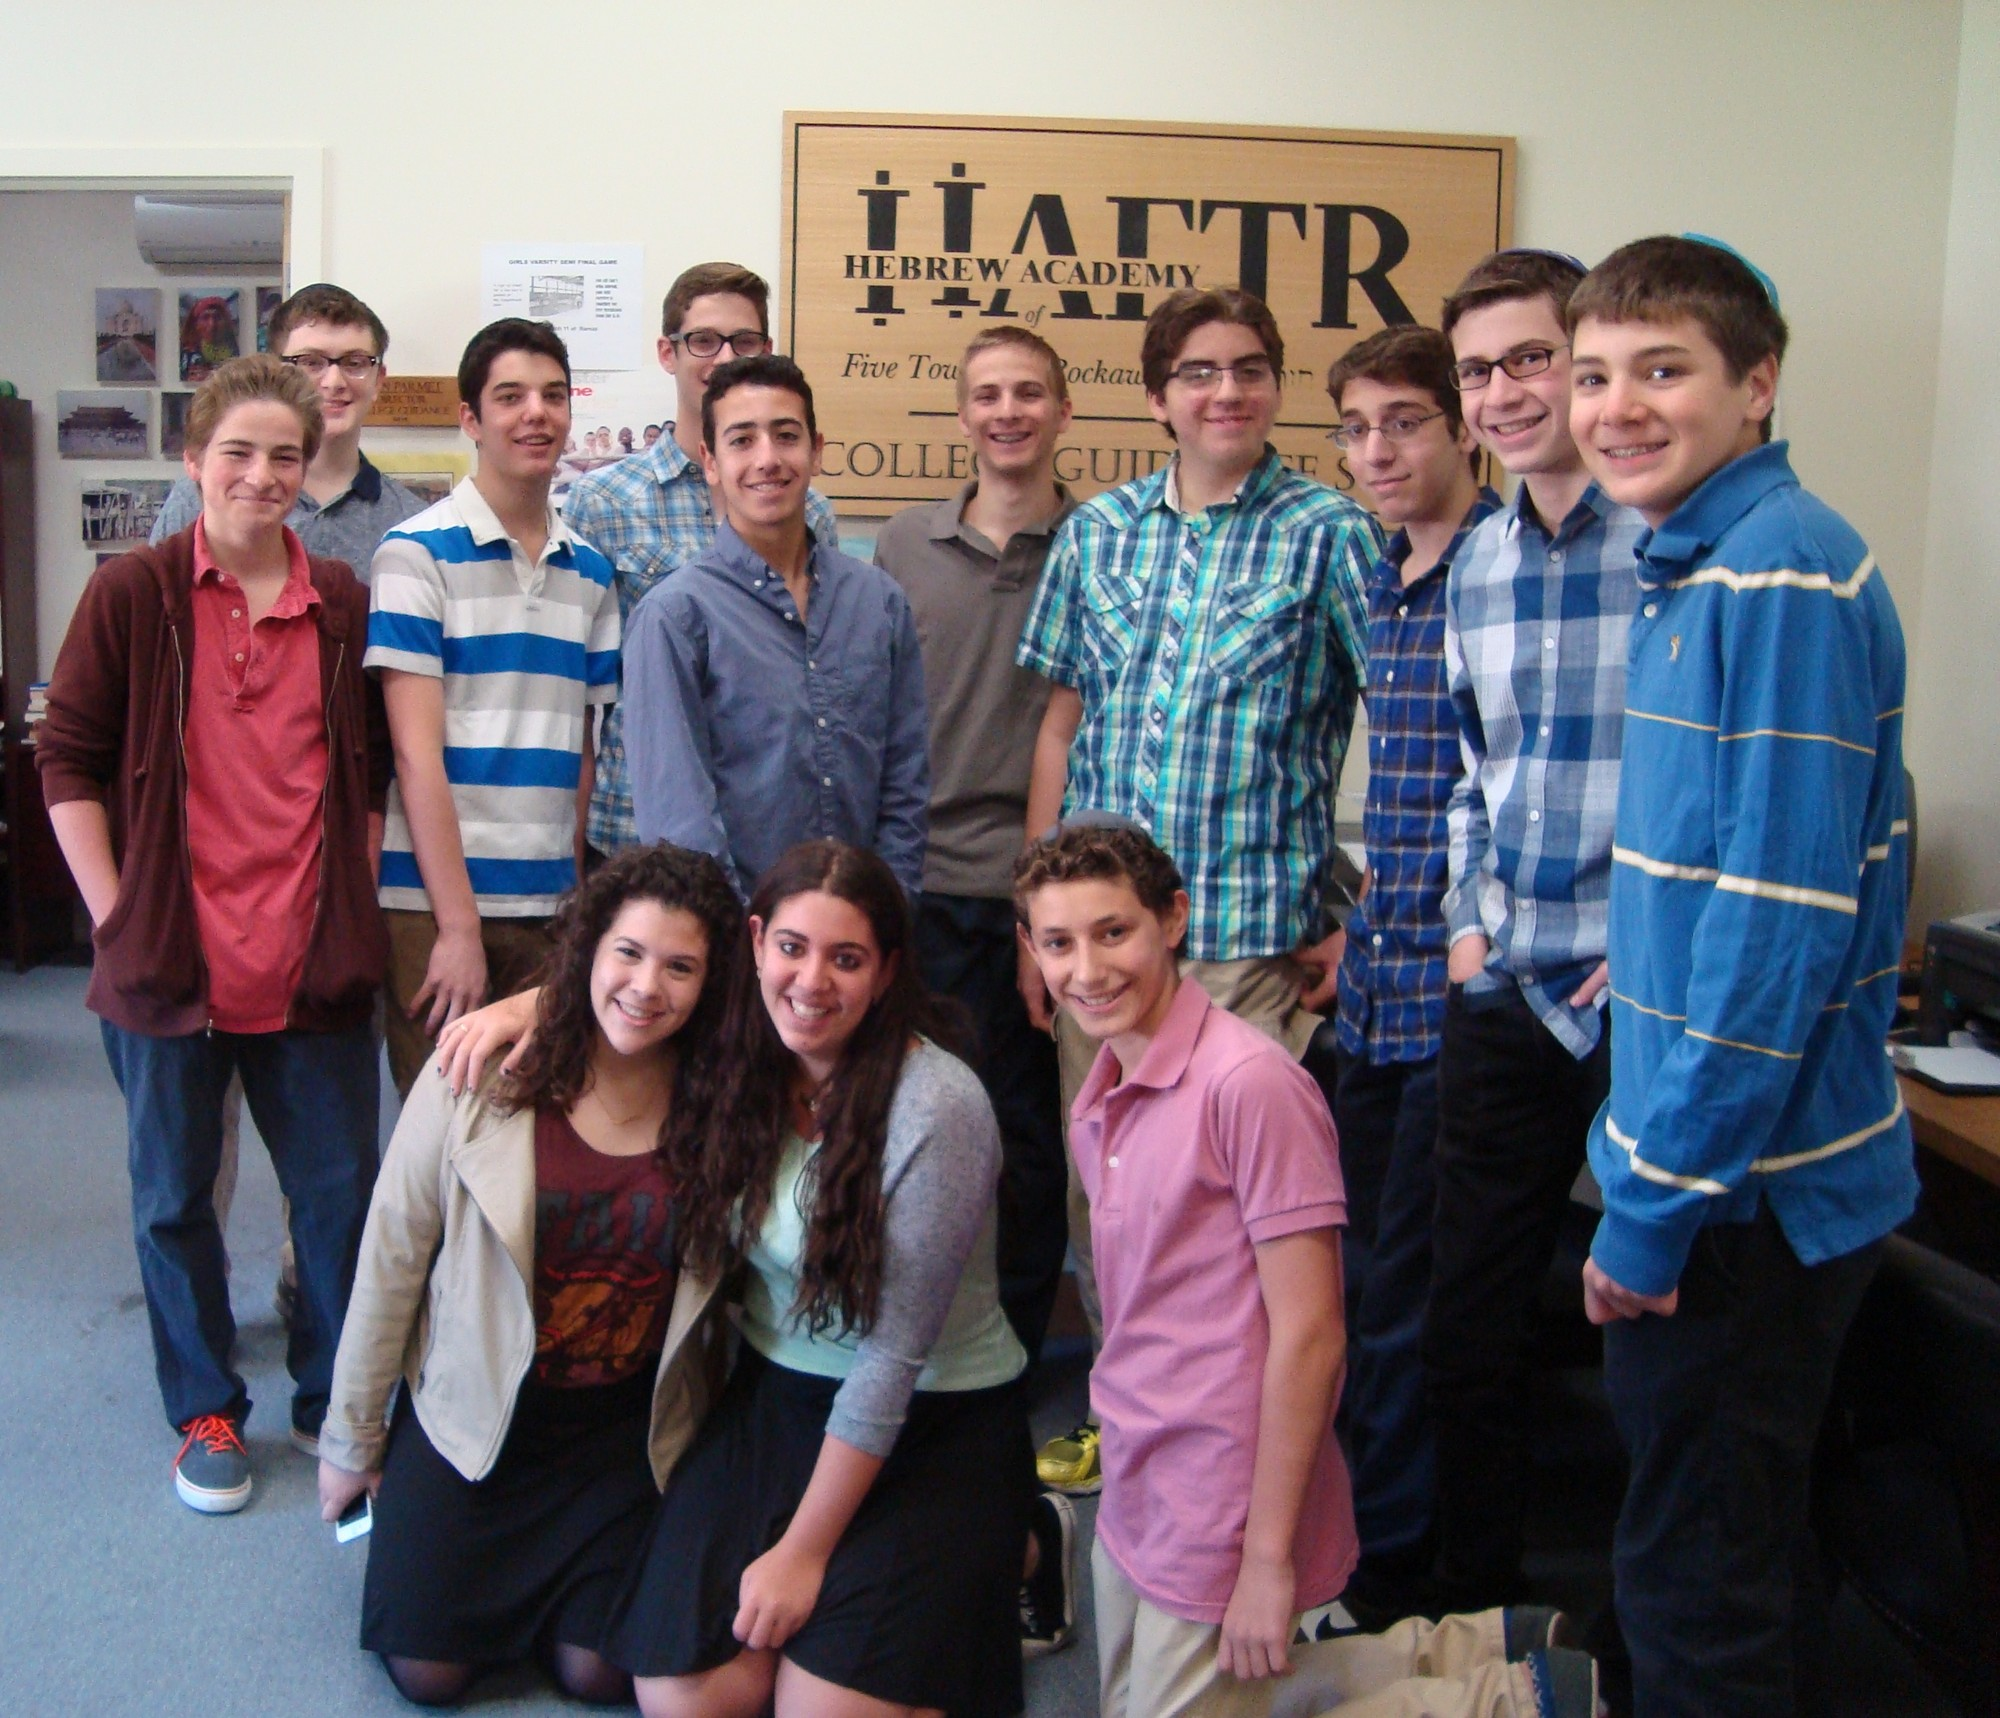 HAFTR's junior varsity College Bowl won their division's title and advanced into the playoffs of the yeshiva school competition.